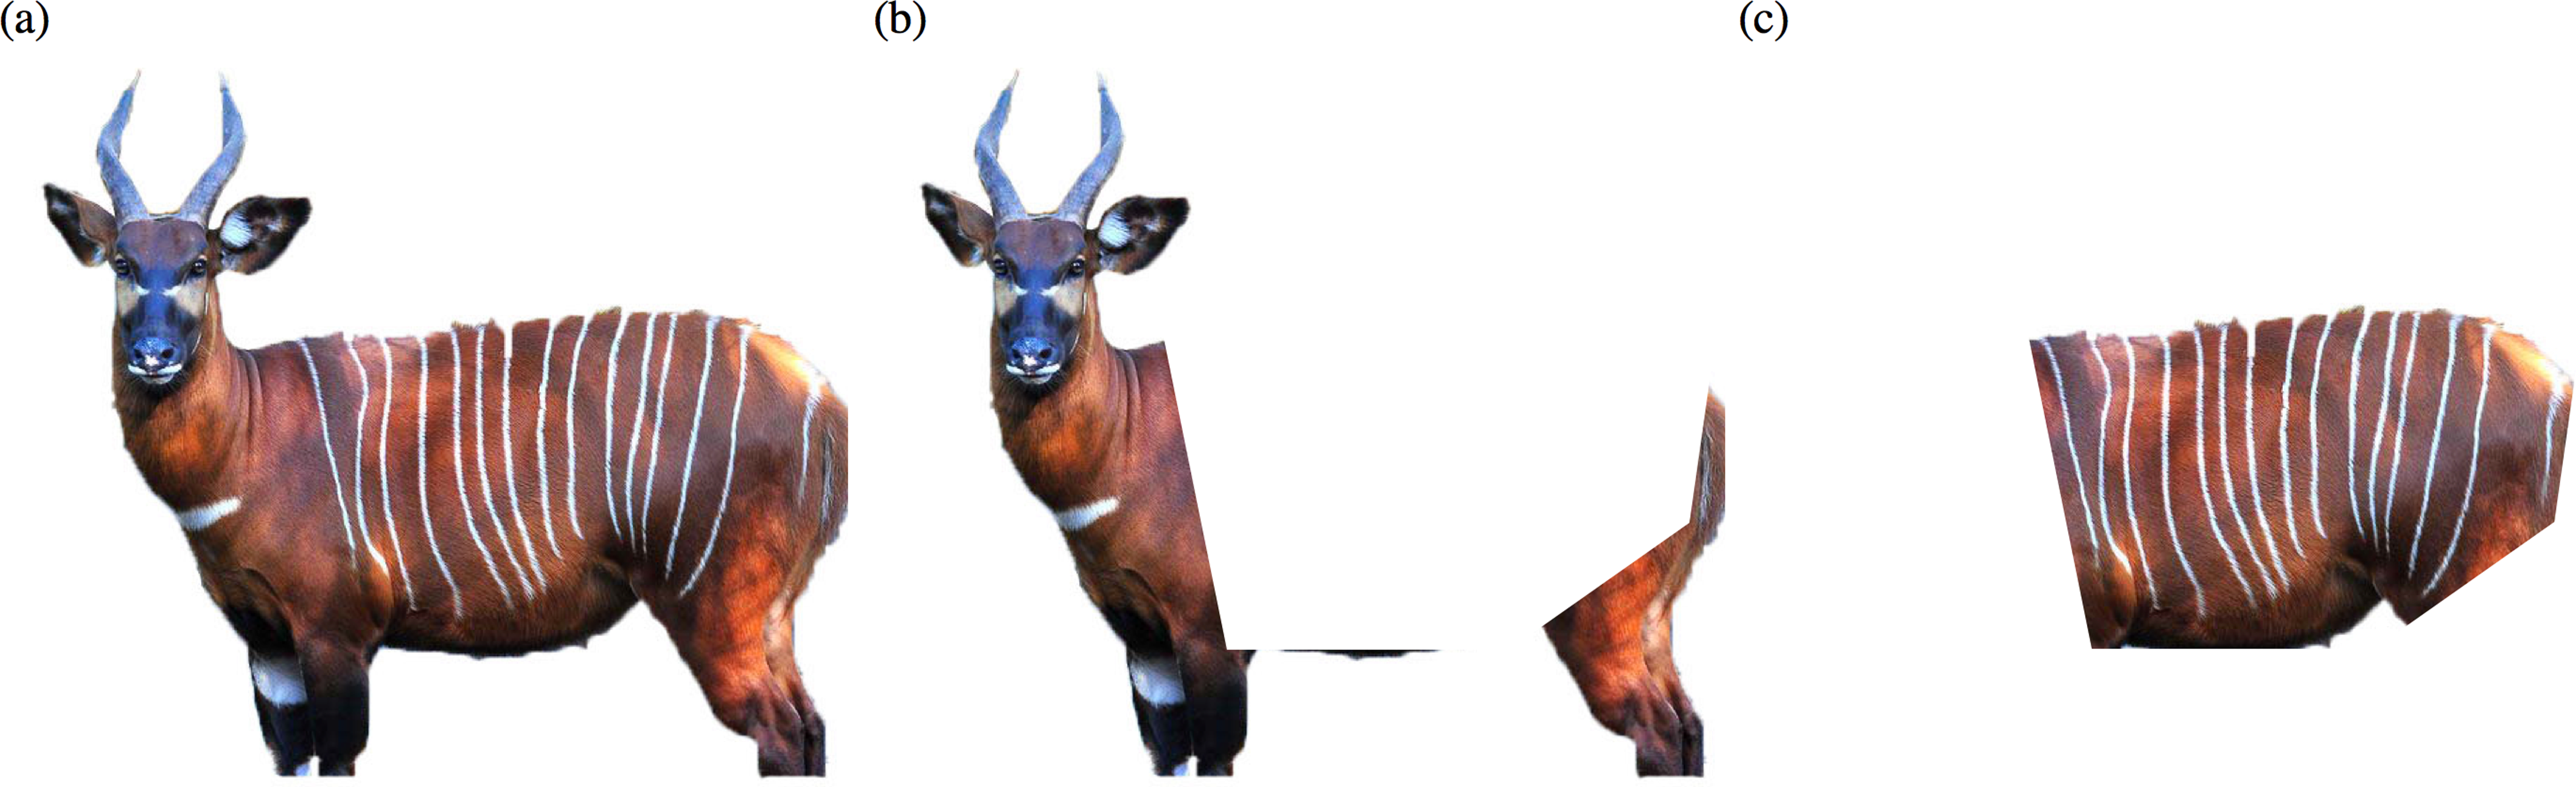 Factors affecting the identification of individual mountain bongo